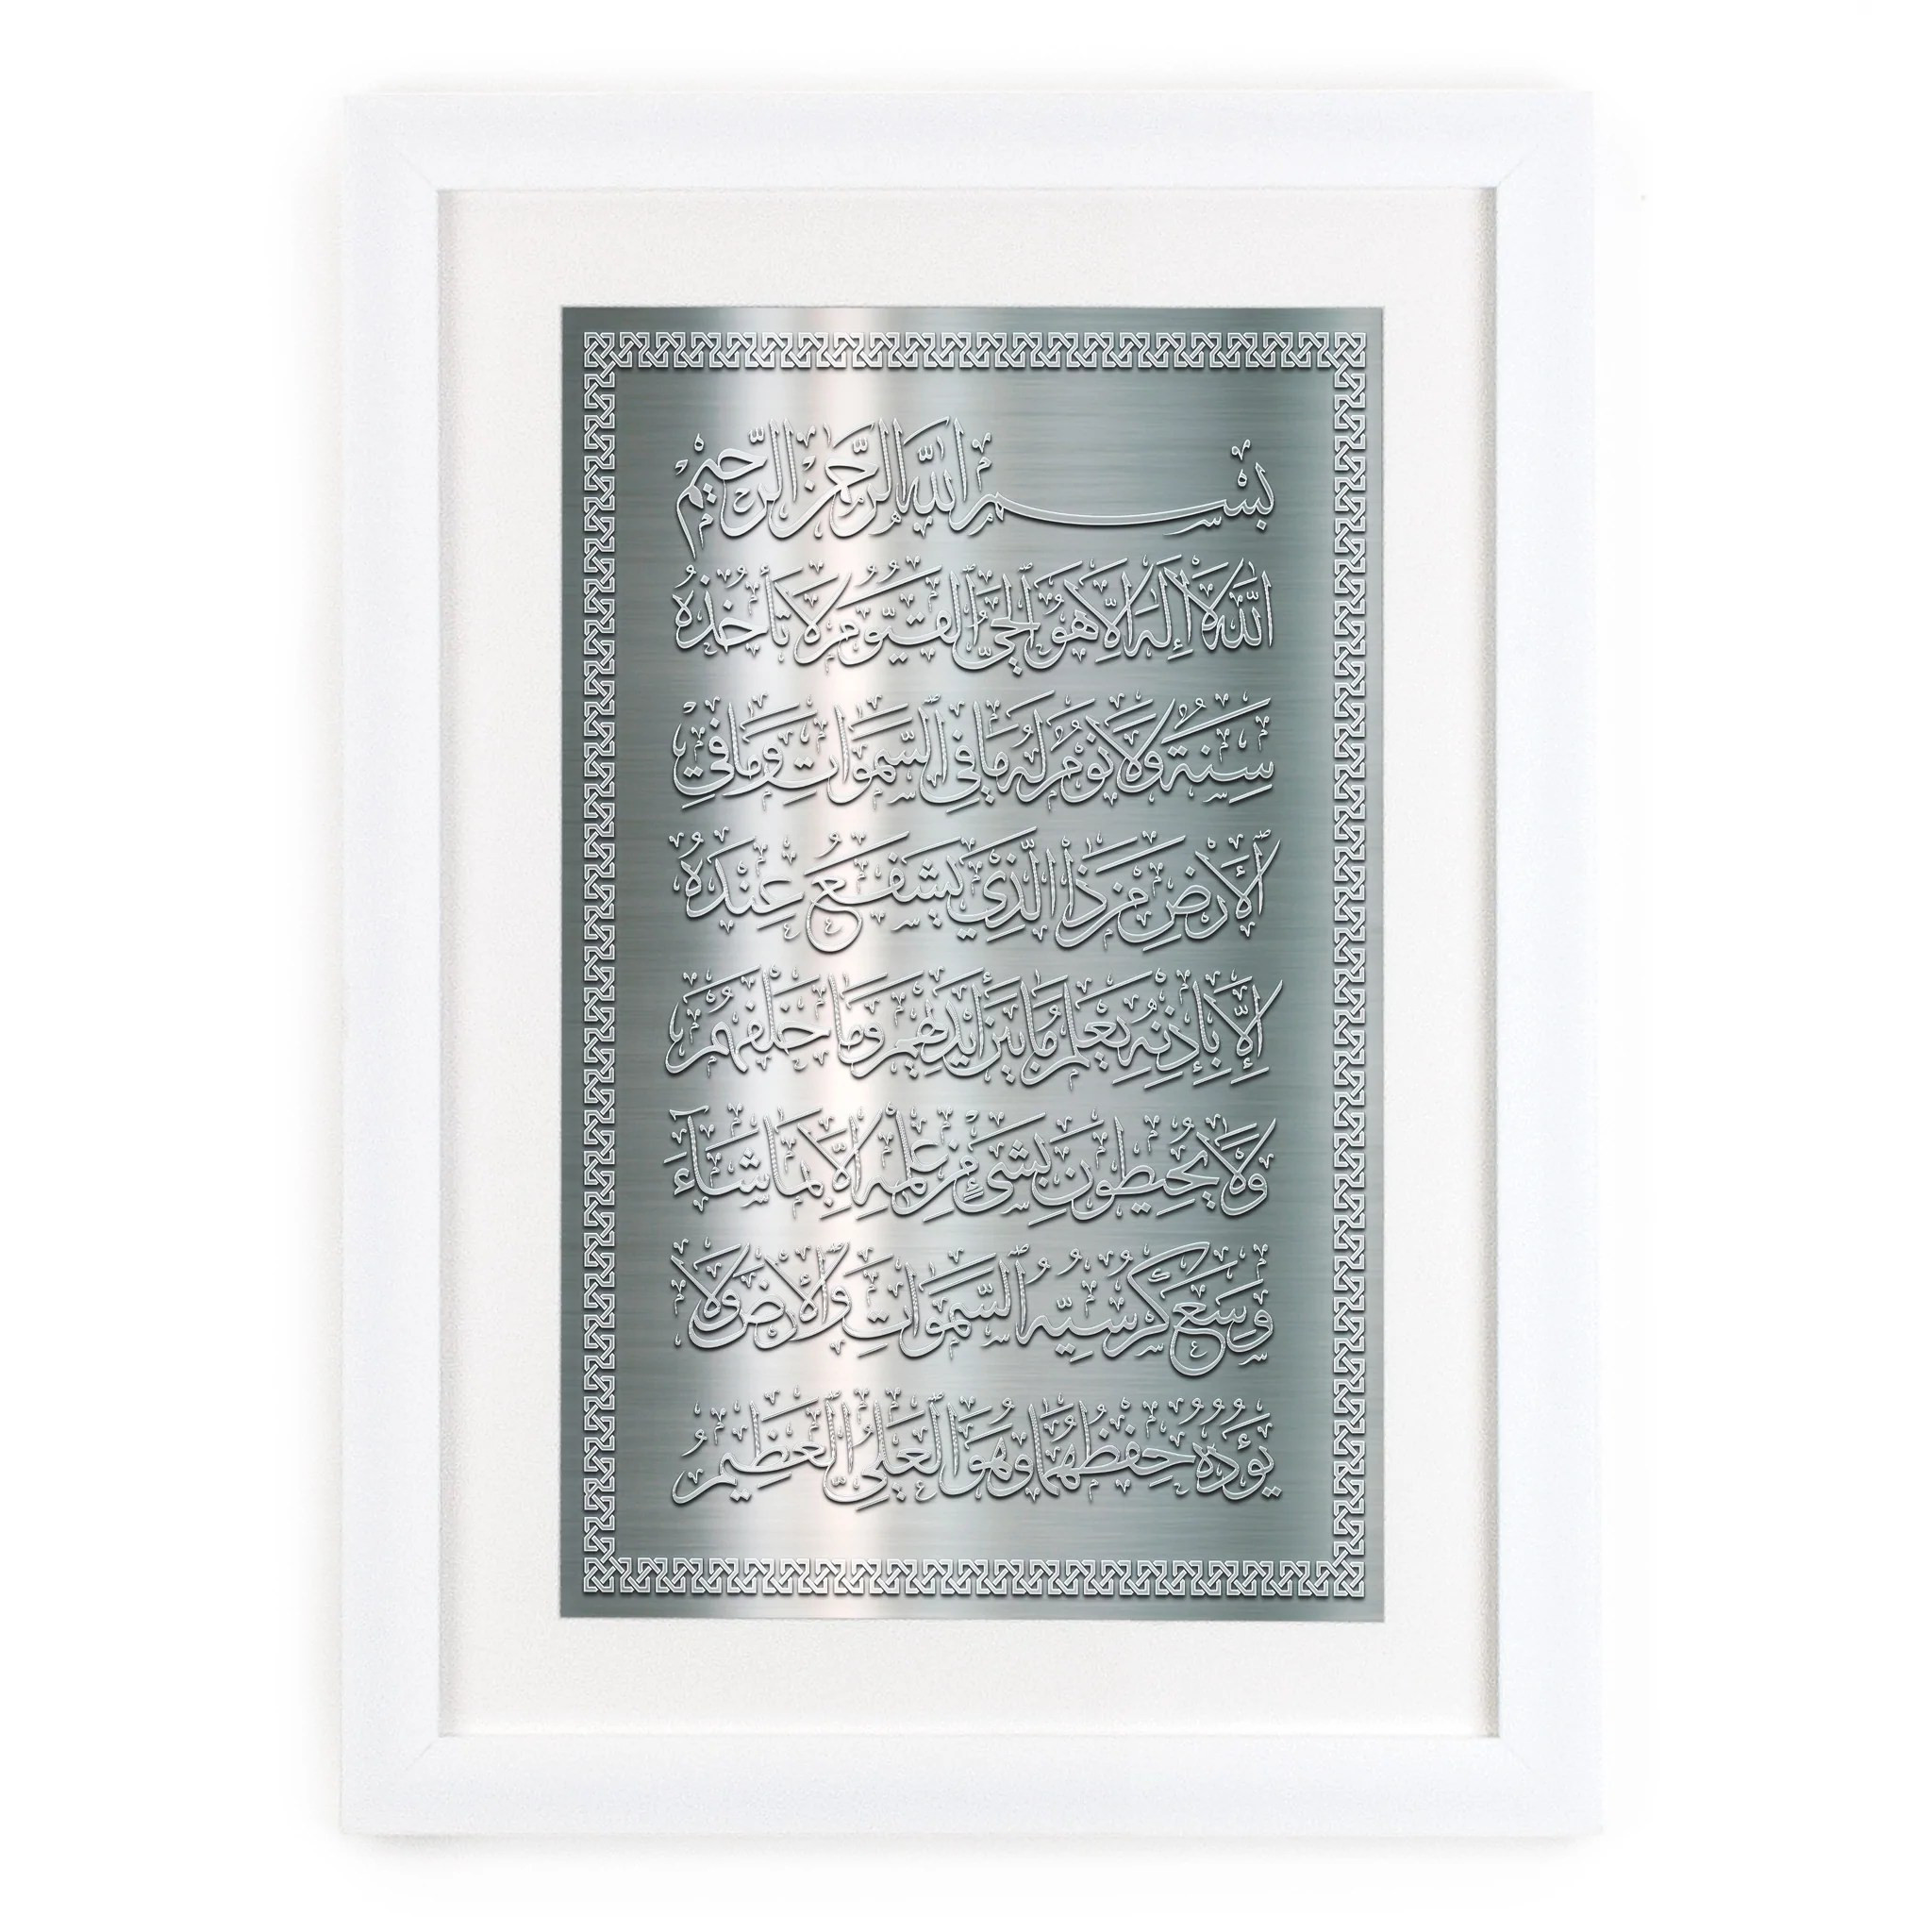 Motif Kursi Ayat Ul Kursi Brushed Metal Effect Design Contemporary White Framed Islamic Wall Art